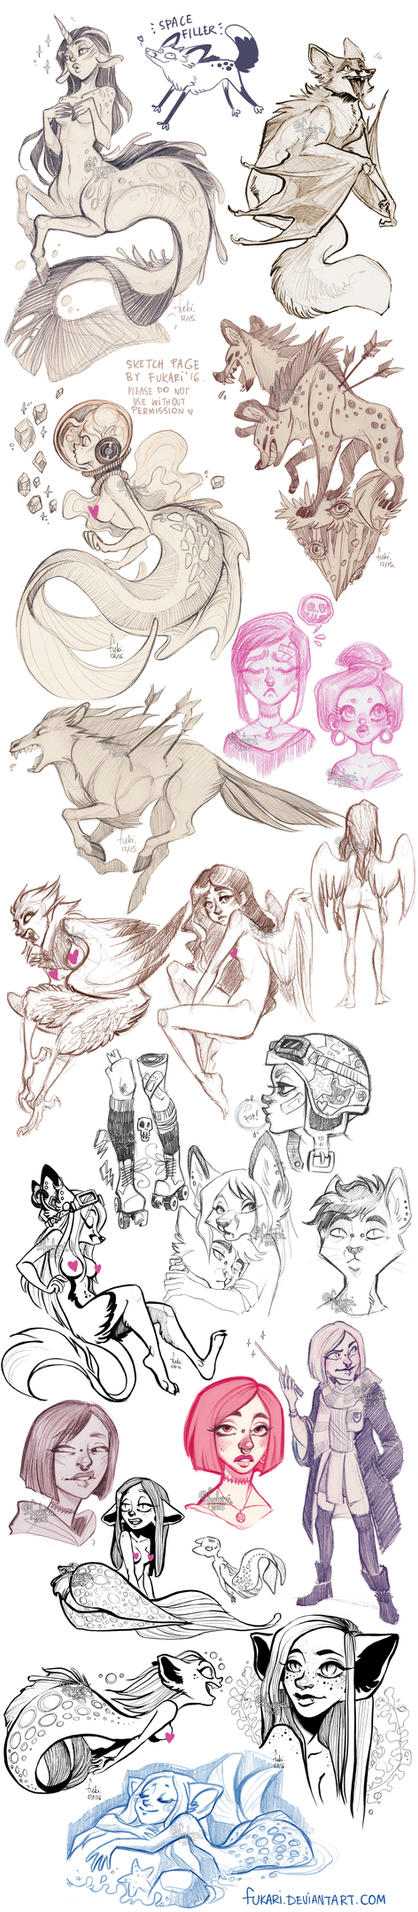 sketch dump of randomness by Fukari